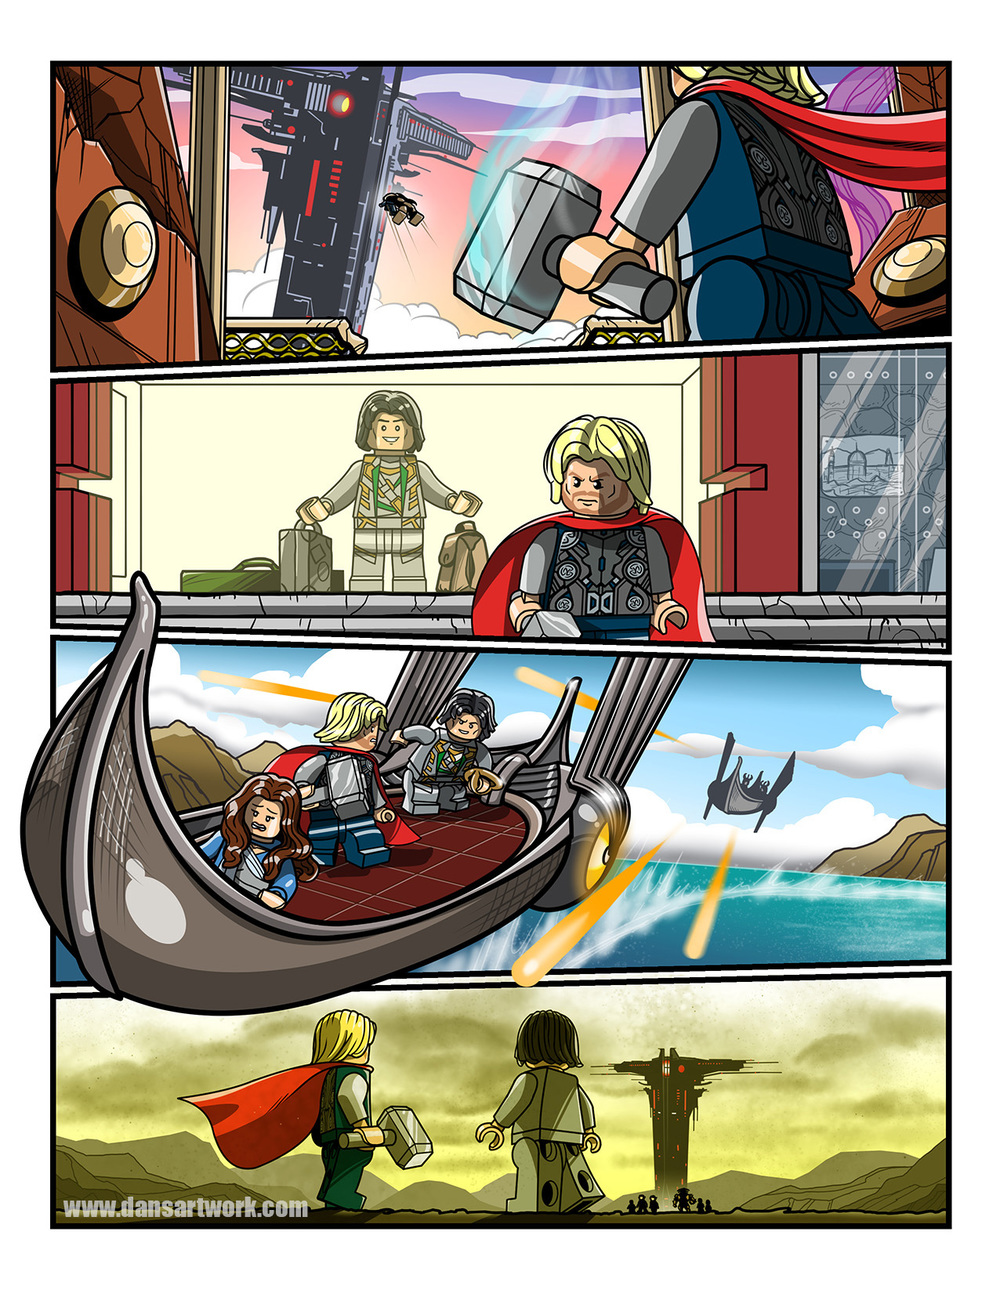 Thor2_Midtro1_Pg1_FinalColors_@dveese.jpg